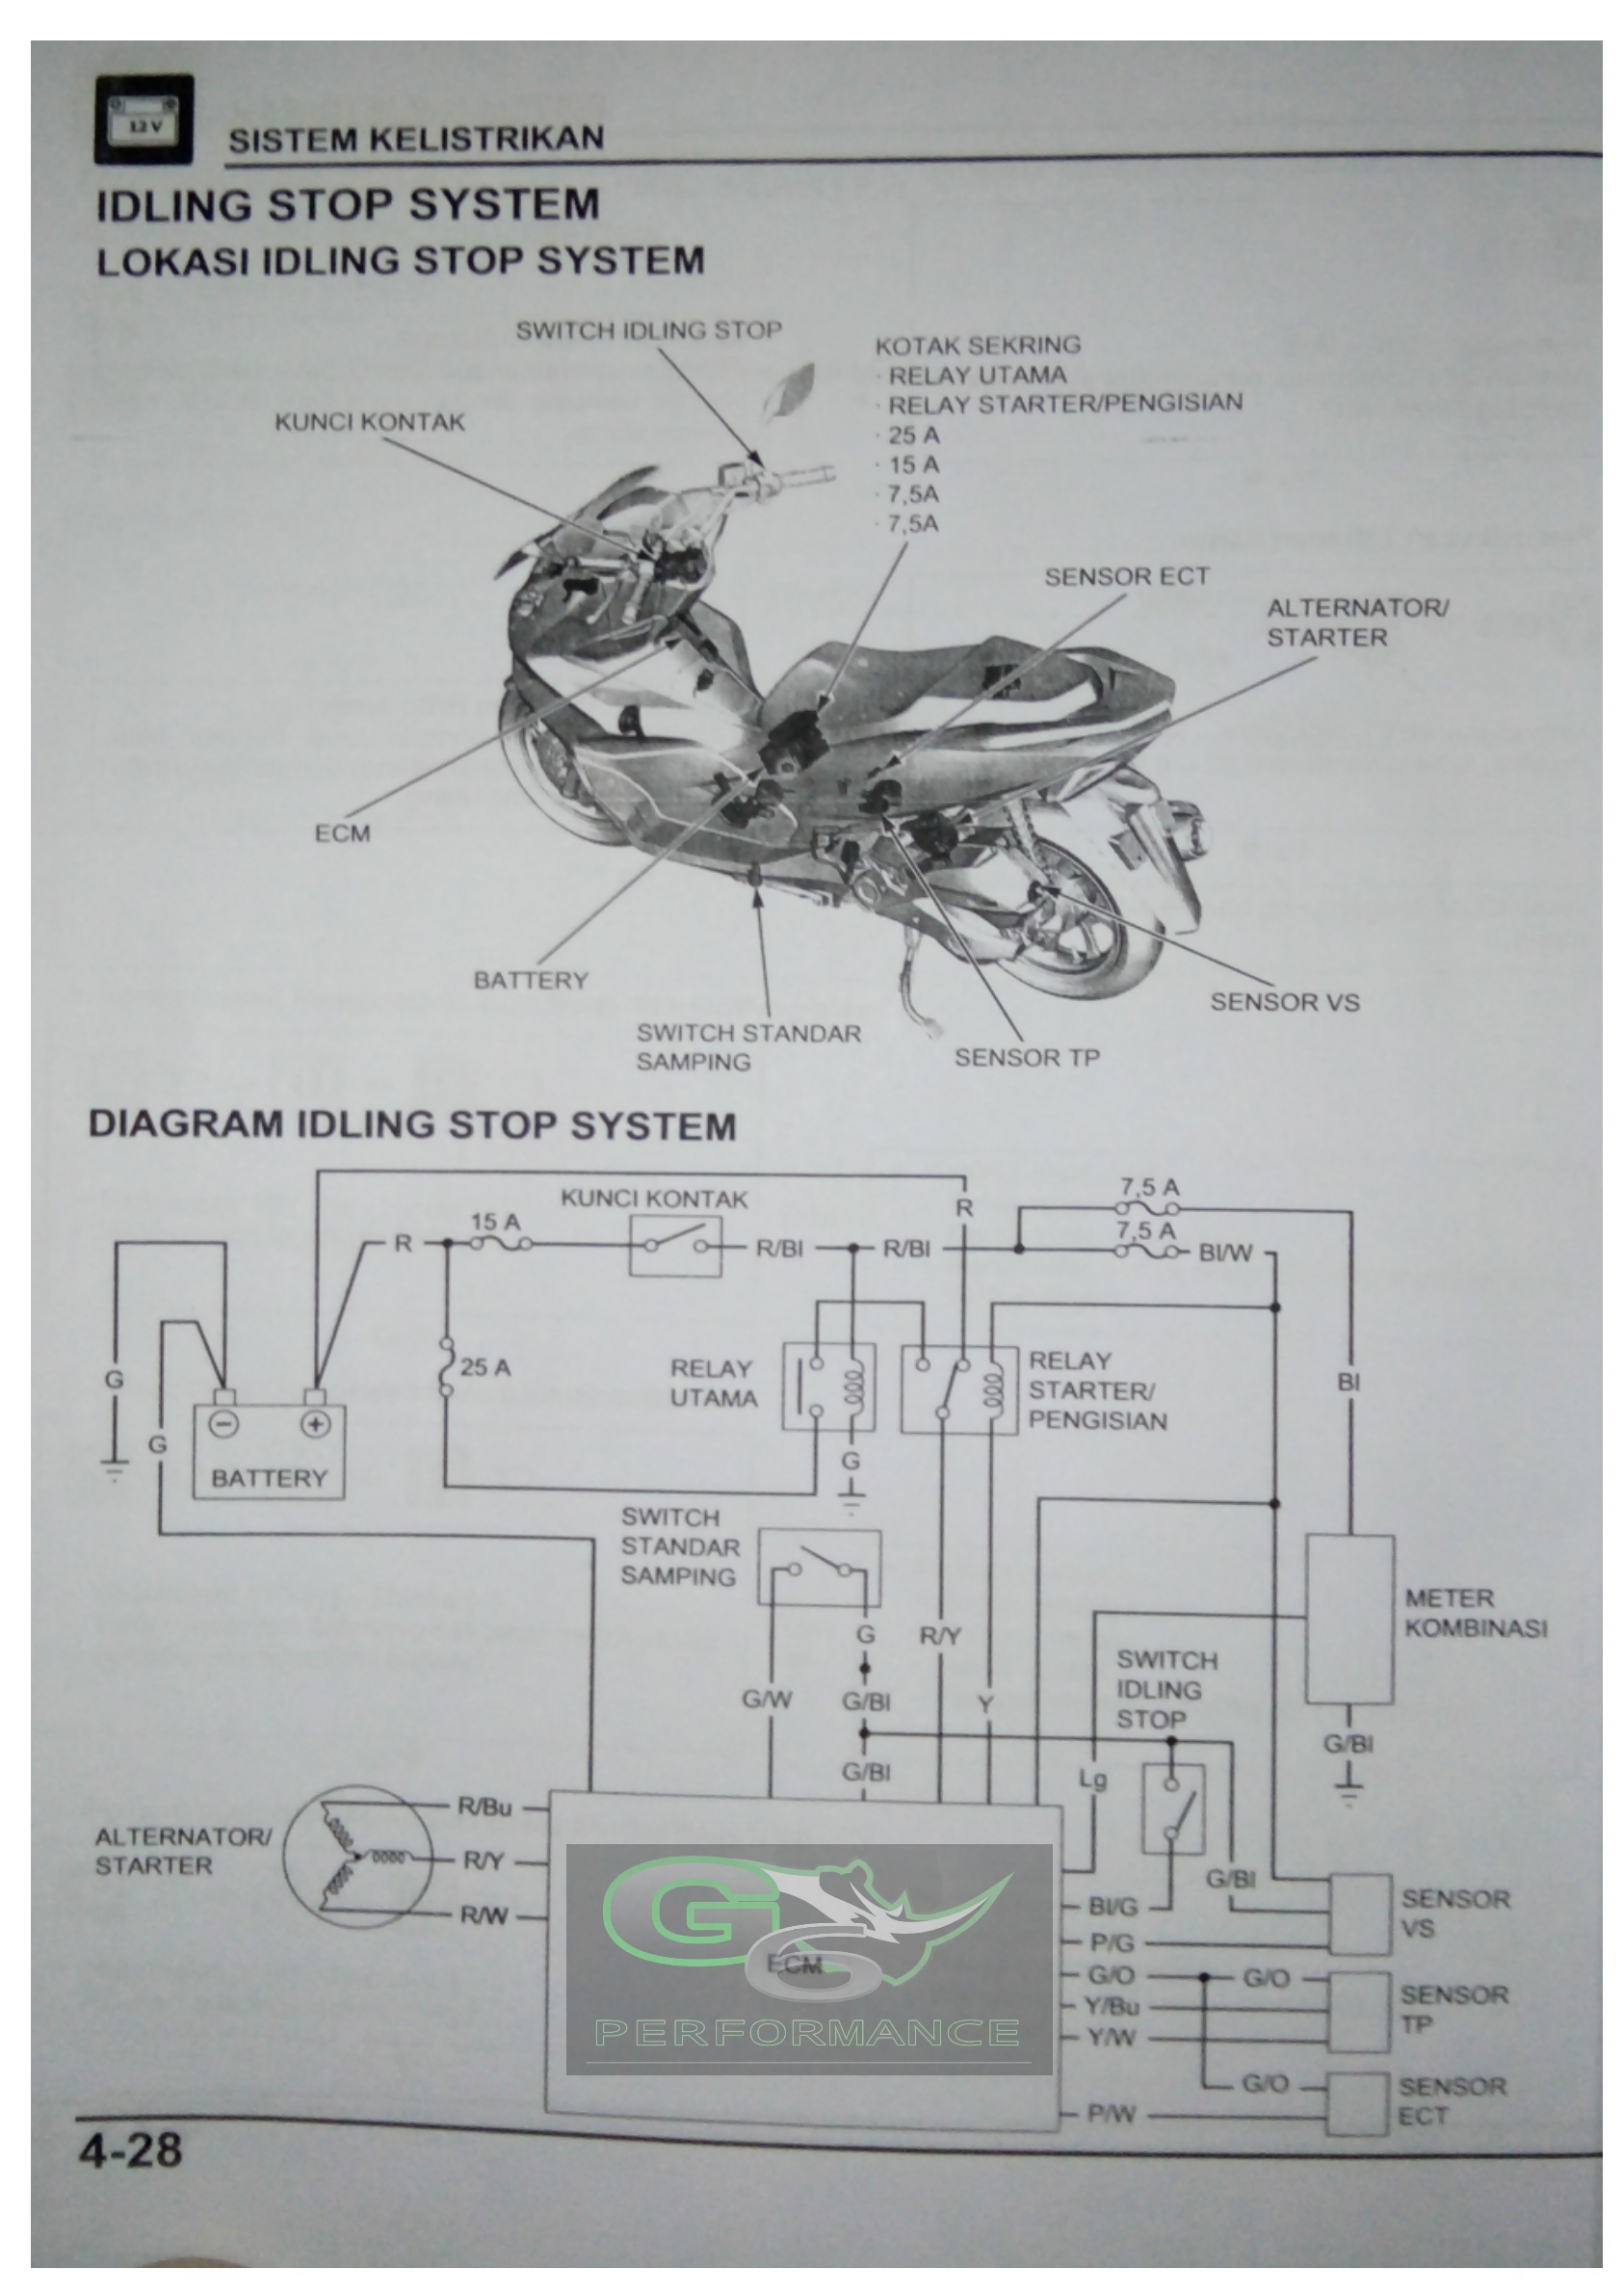 electric wiring system diagram honda new pcx 150 2018 gisix s blog honda pcx 150 wiring diagram wiring diagram honda pcx [ 1685 x 2383 Pixel ]